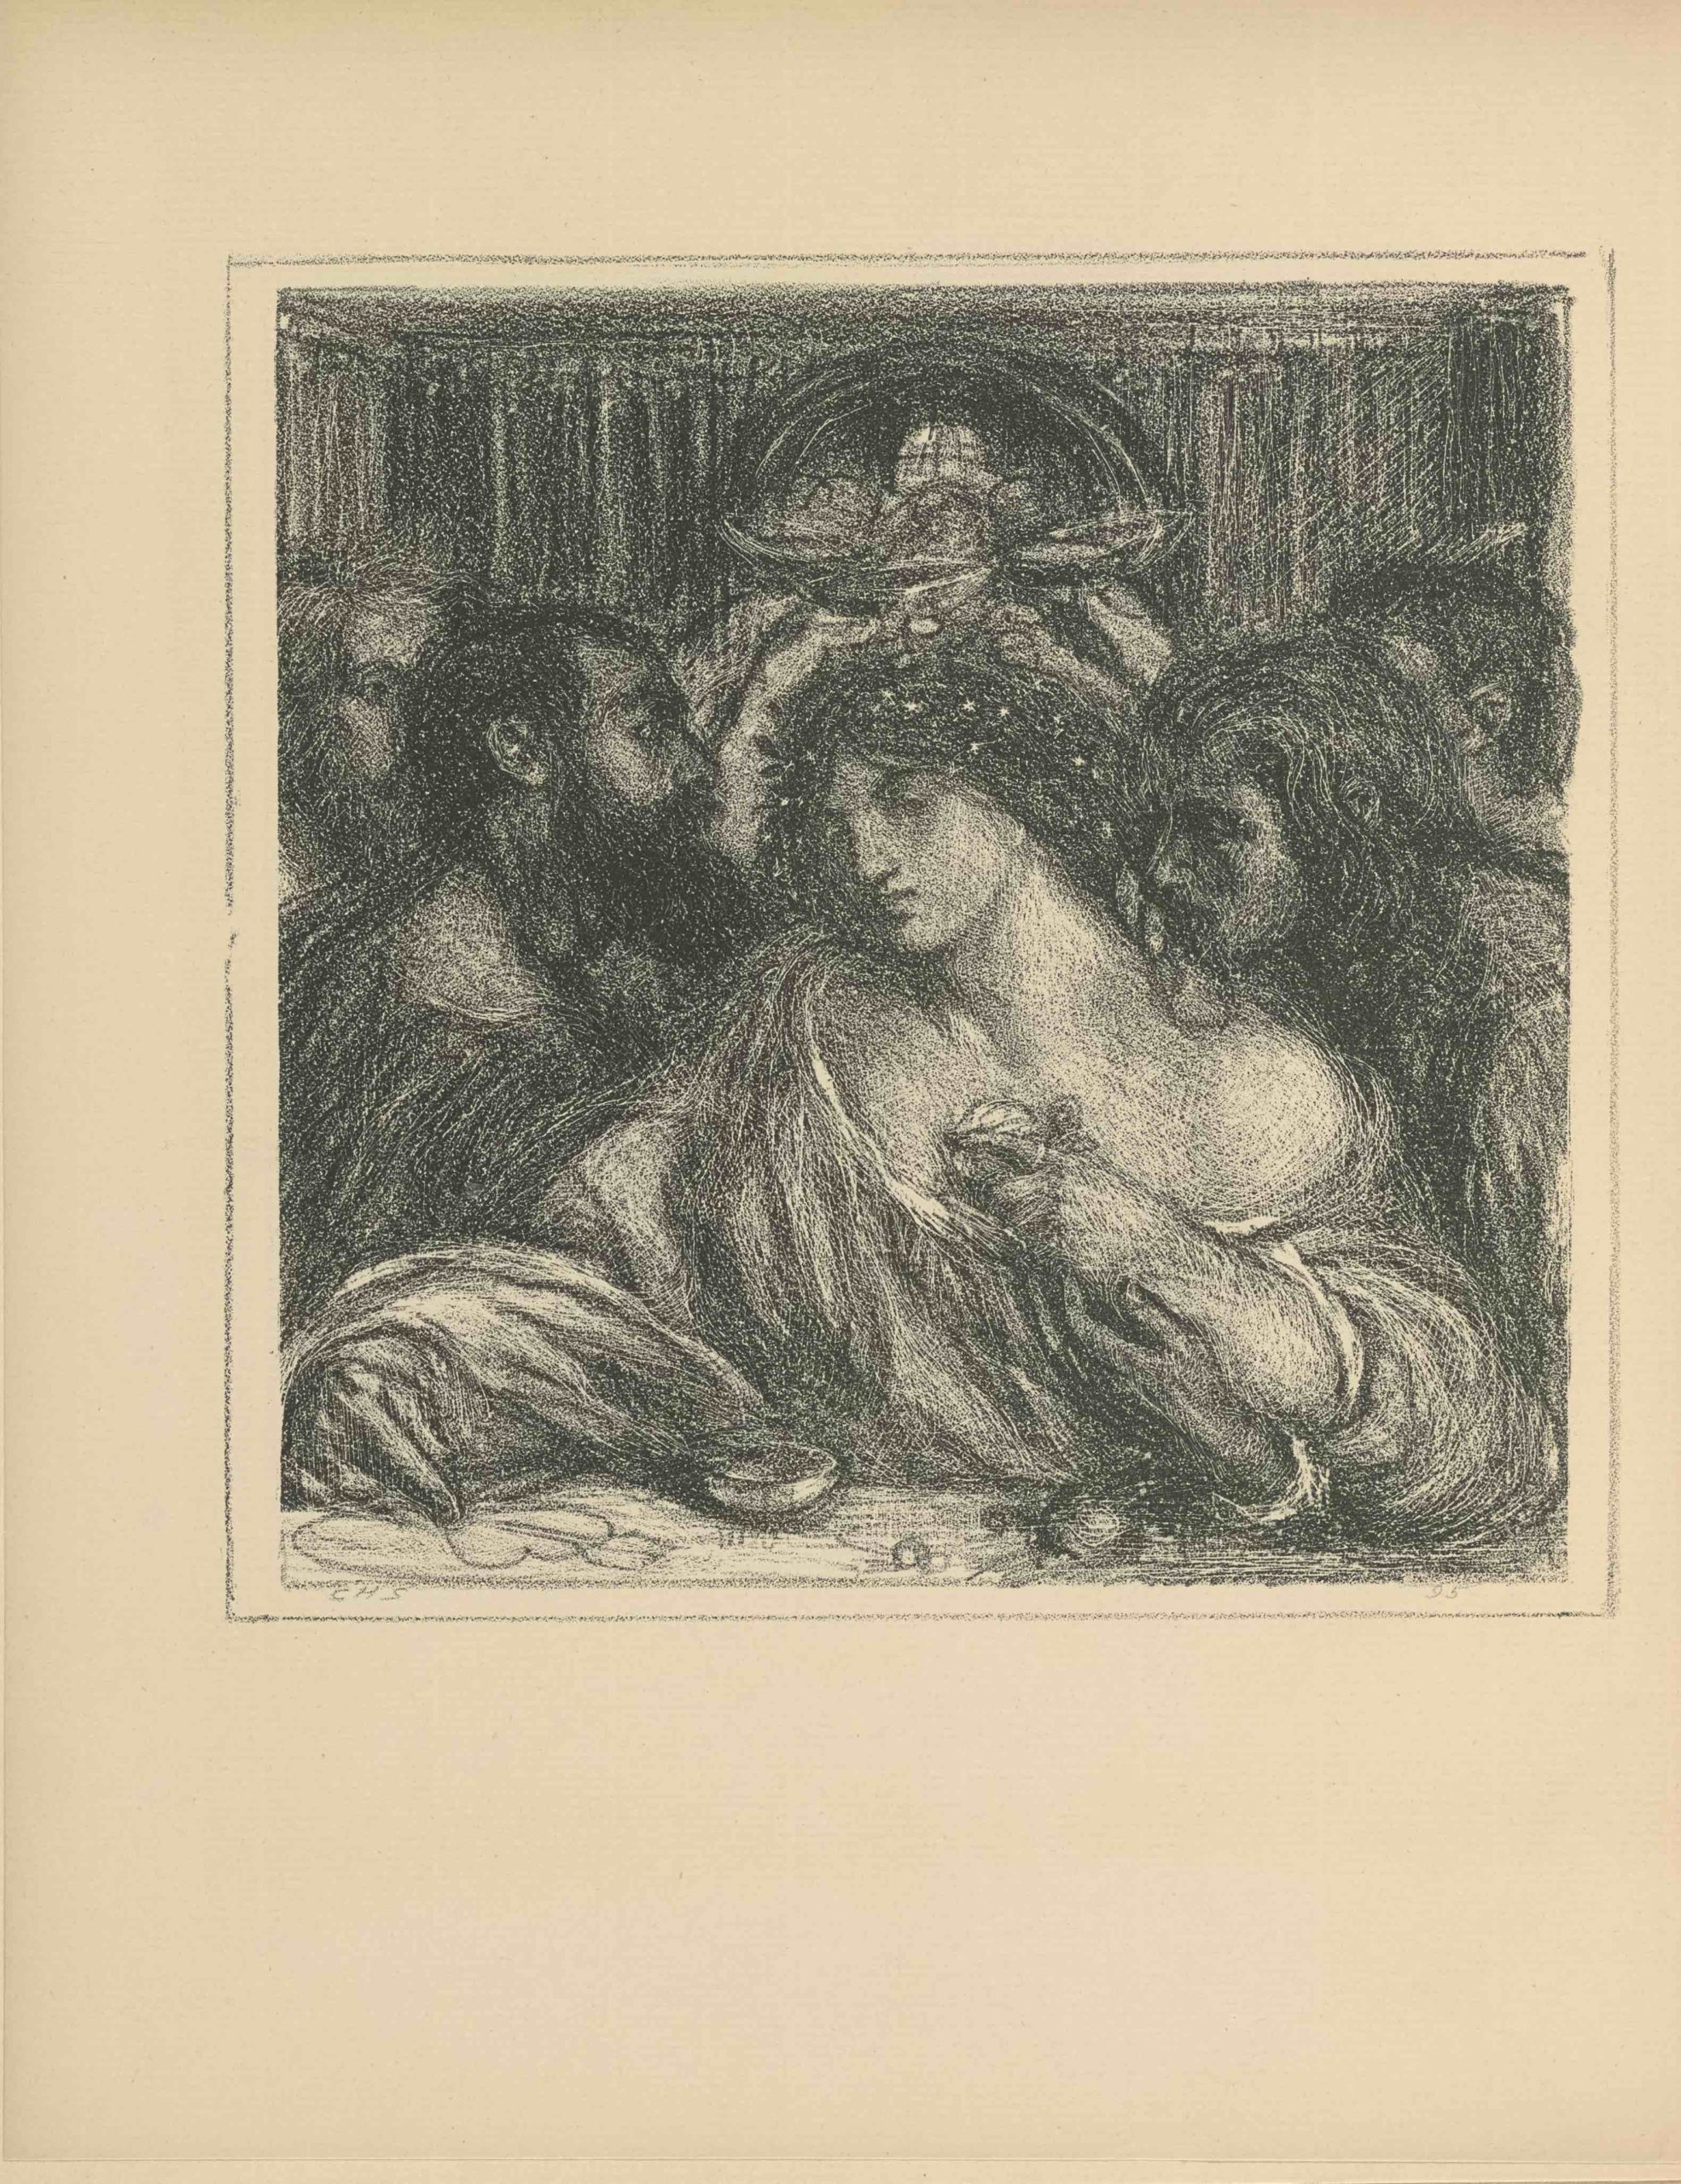 The square lithographic image is framed within a thinly-lined double border, rendered in tones of black. The image is an illustration of Delia, from the poems of Tibullus. In the foreground, Delia is seated at a table eating, facing the viewer. She wears a ring on the index finger of her left hand, which holds a fruit up to her chest. With her right hand she draws a heart with an arrow through it on the table. She wears white flowers in her hair. Her loose-fitting robes fall off of her left shoulder, where a man, Albius Tiuillus, leans in profile to kiss the nape of her neck. Three men in the background crowd the frame on either side, each lifting cups to toast each other in the upper centre of the frame. In the background a rounded doorway is shown on the far wall, around the dark walls of the room are visible.